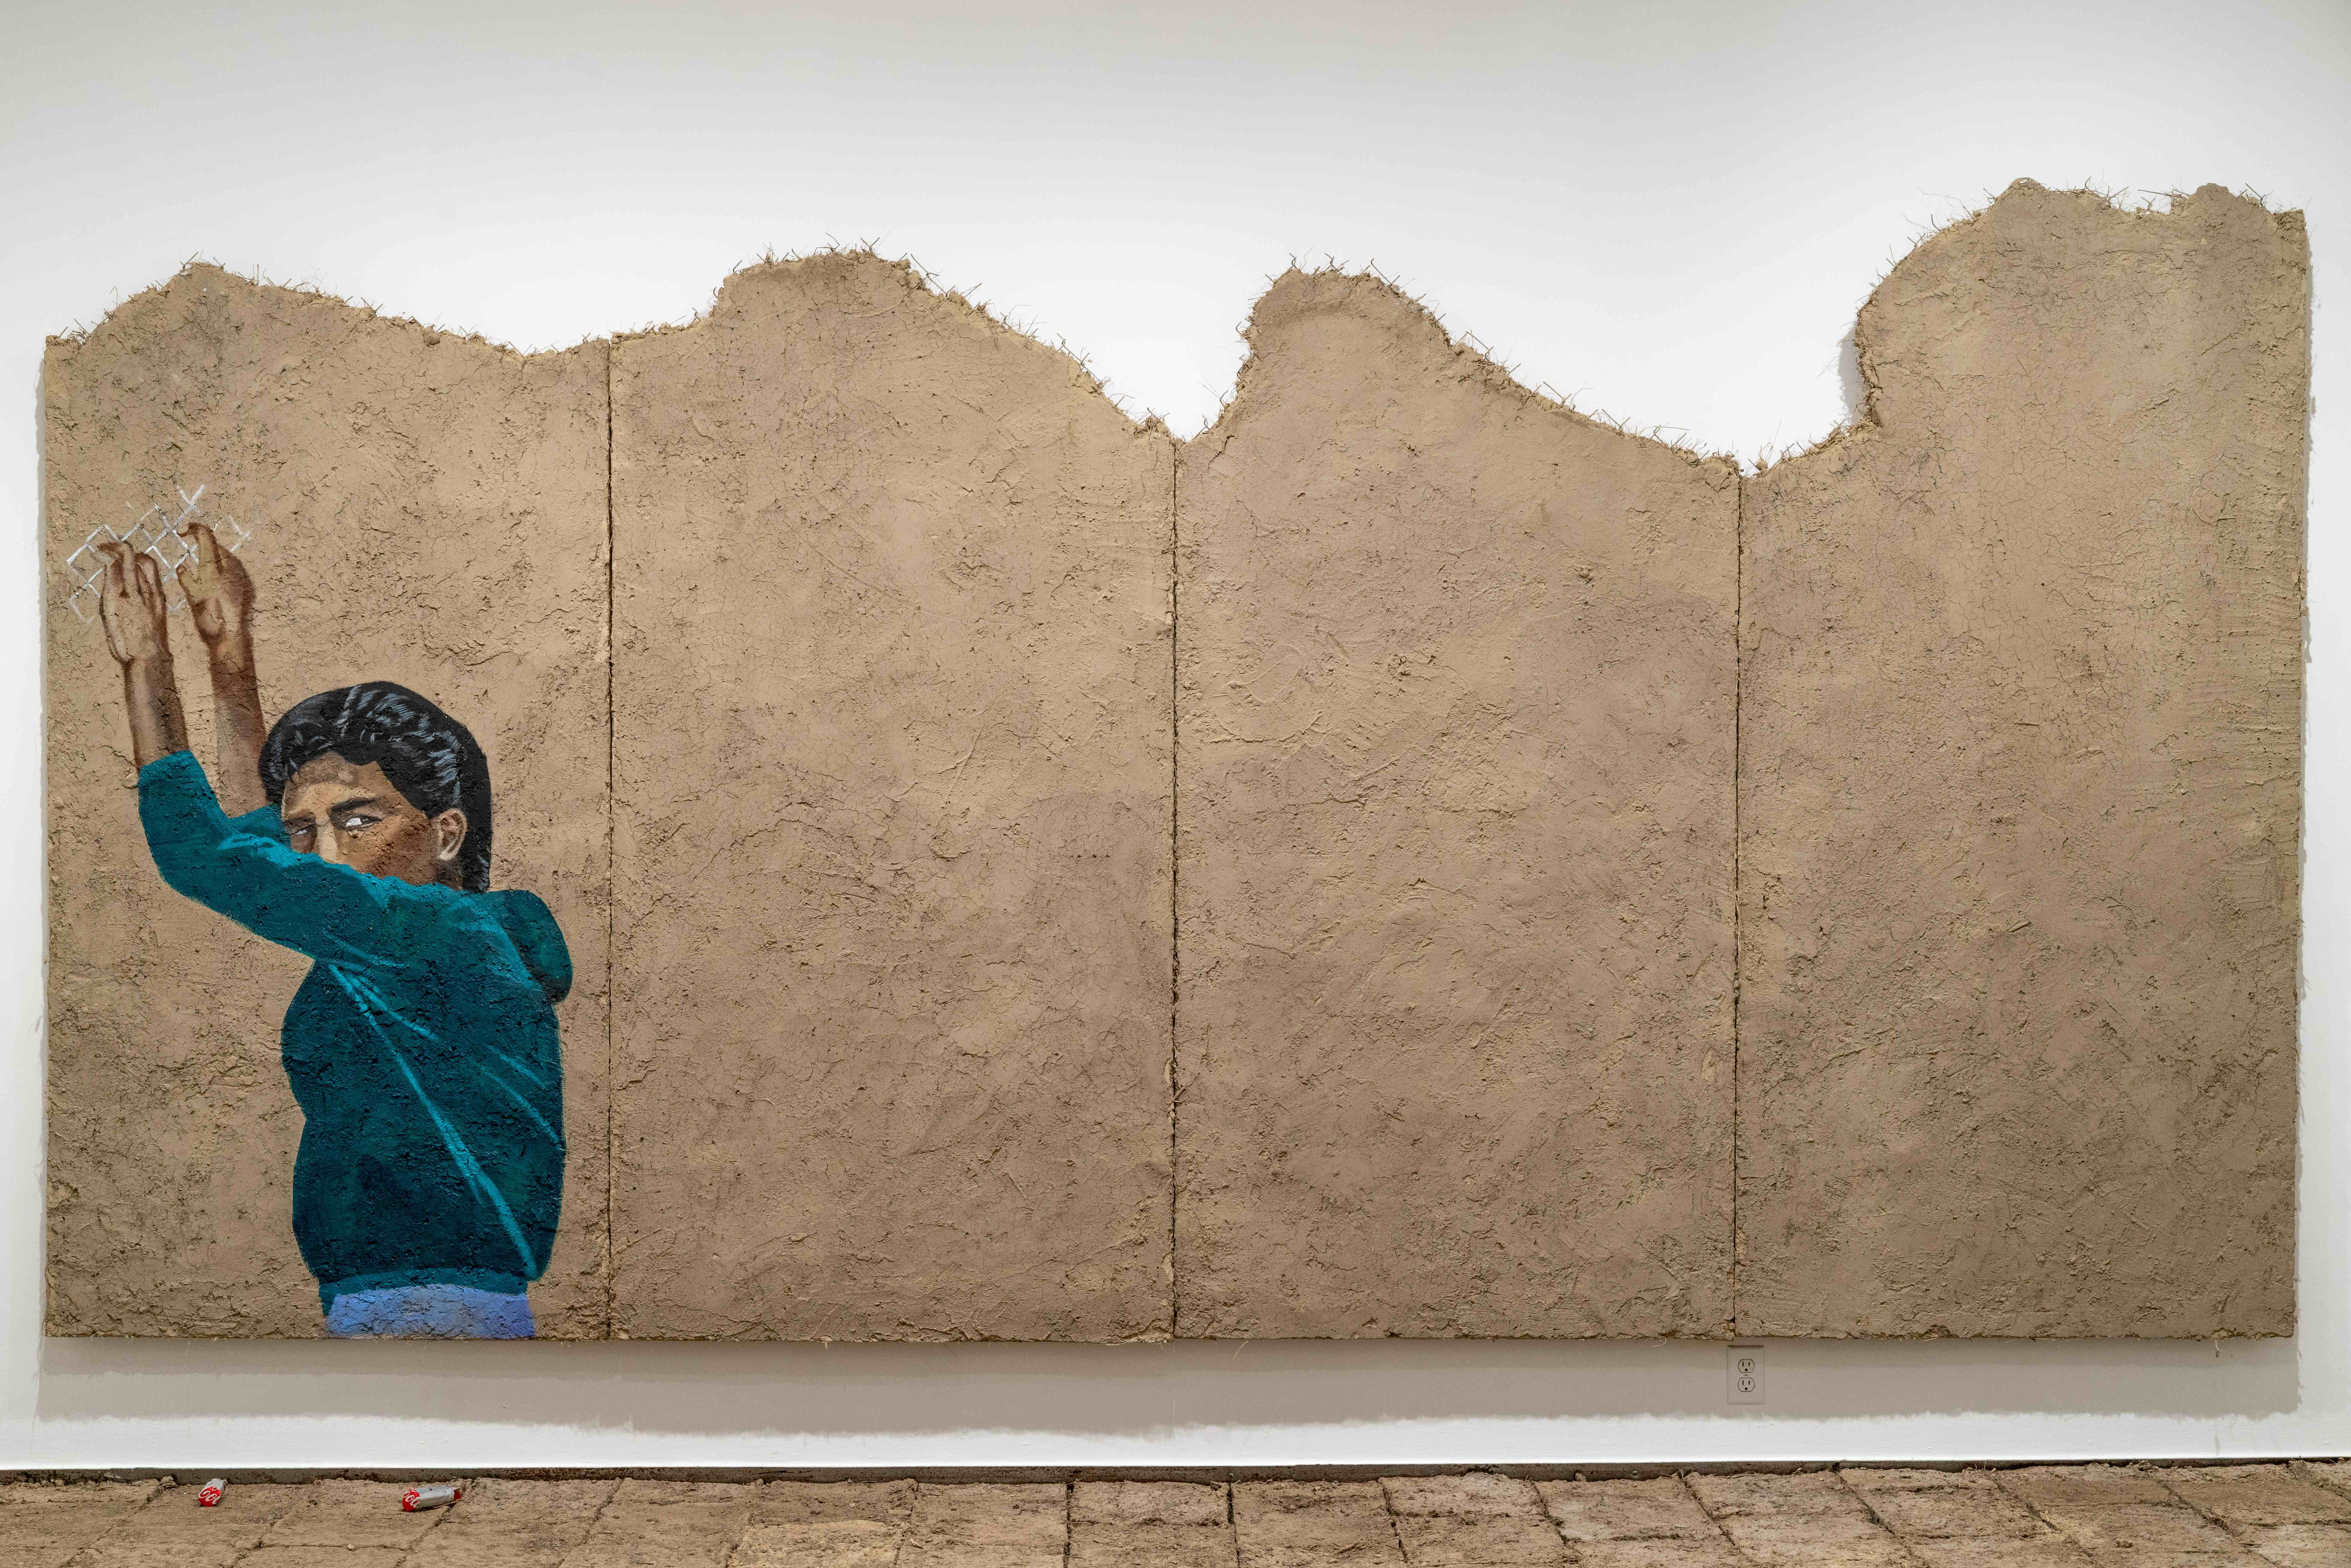 LACMA Acquires Pieces From Rafa Esparza, Gabriella Sanchez & Other Politically-Engaged Artists